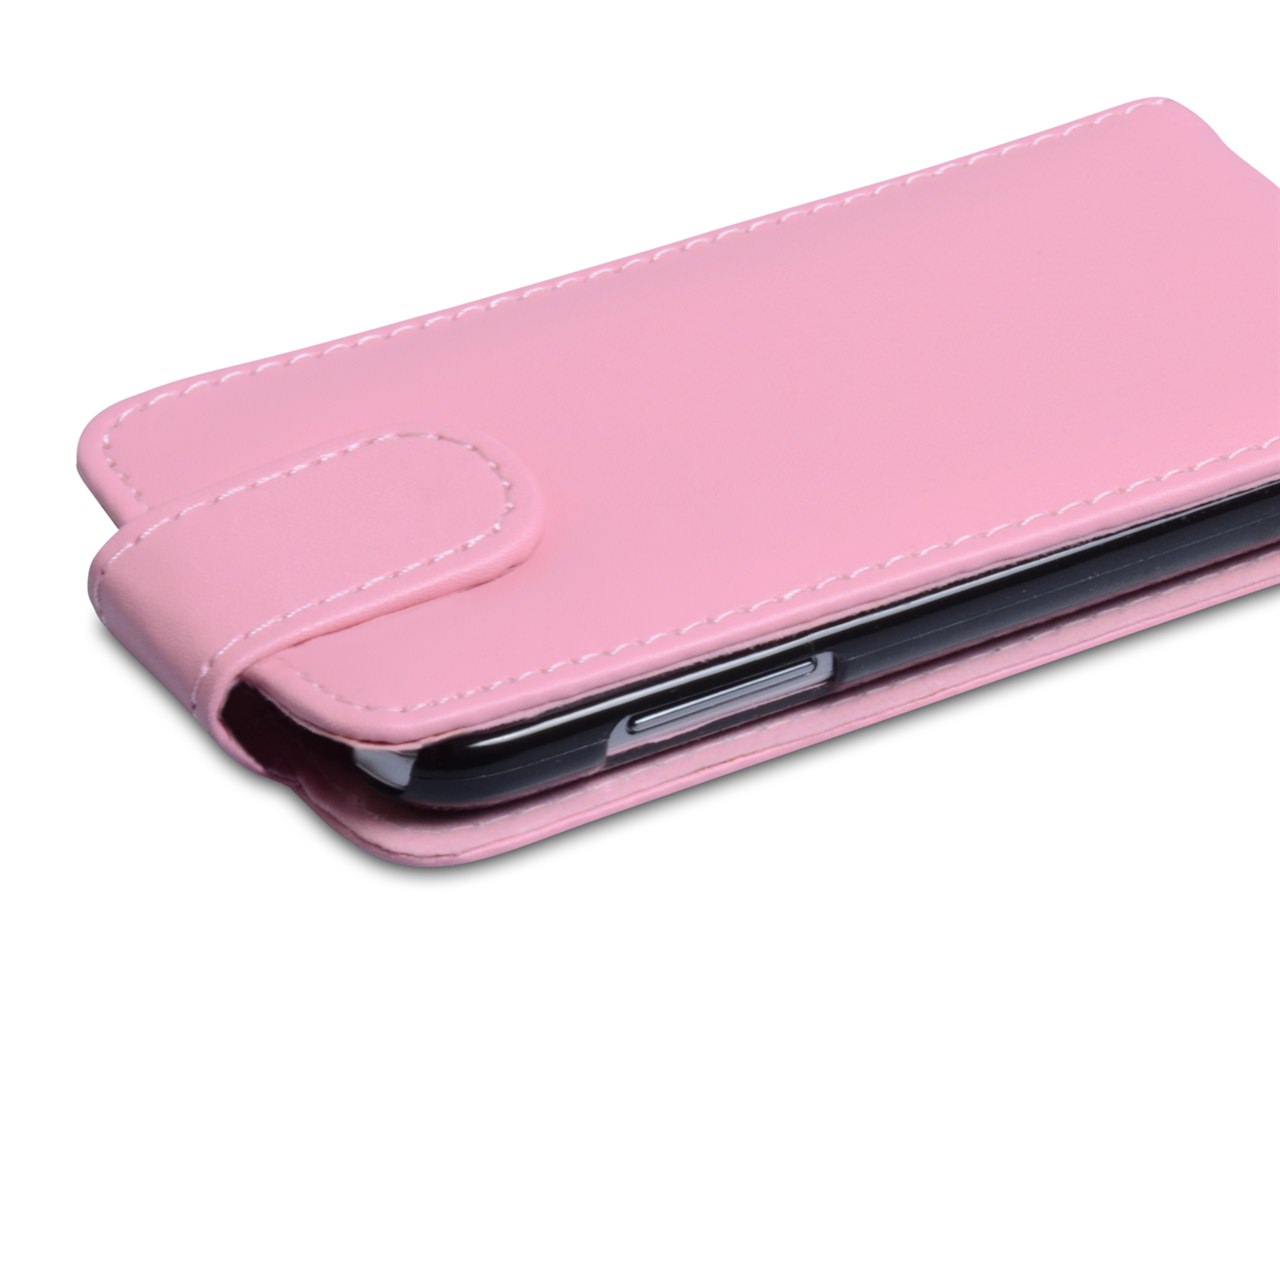 YouSave Samsung Galaxy S4 Mini Pink Leather Effect Flip Case